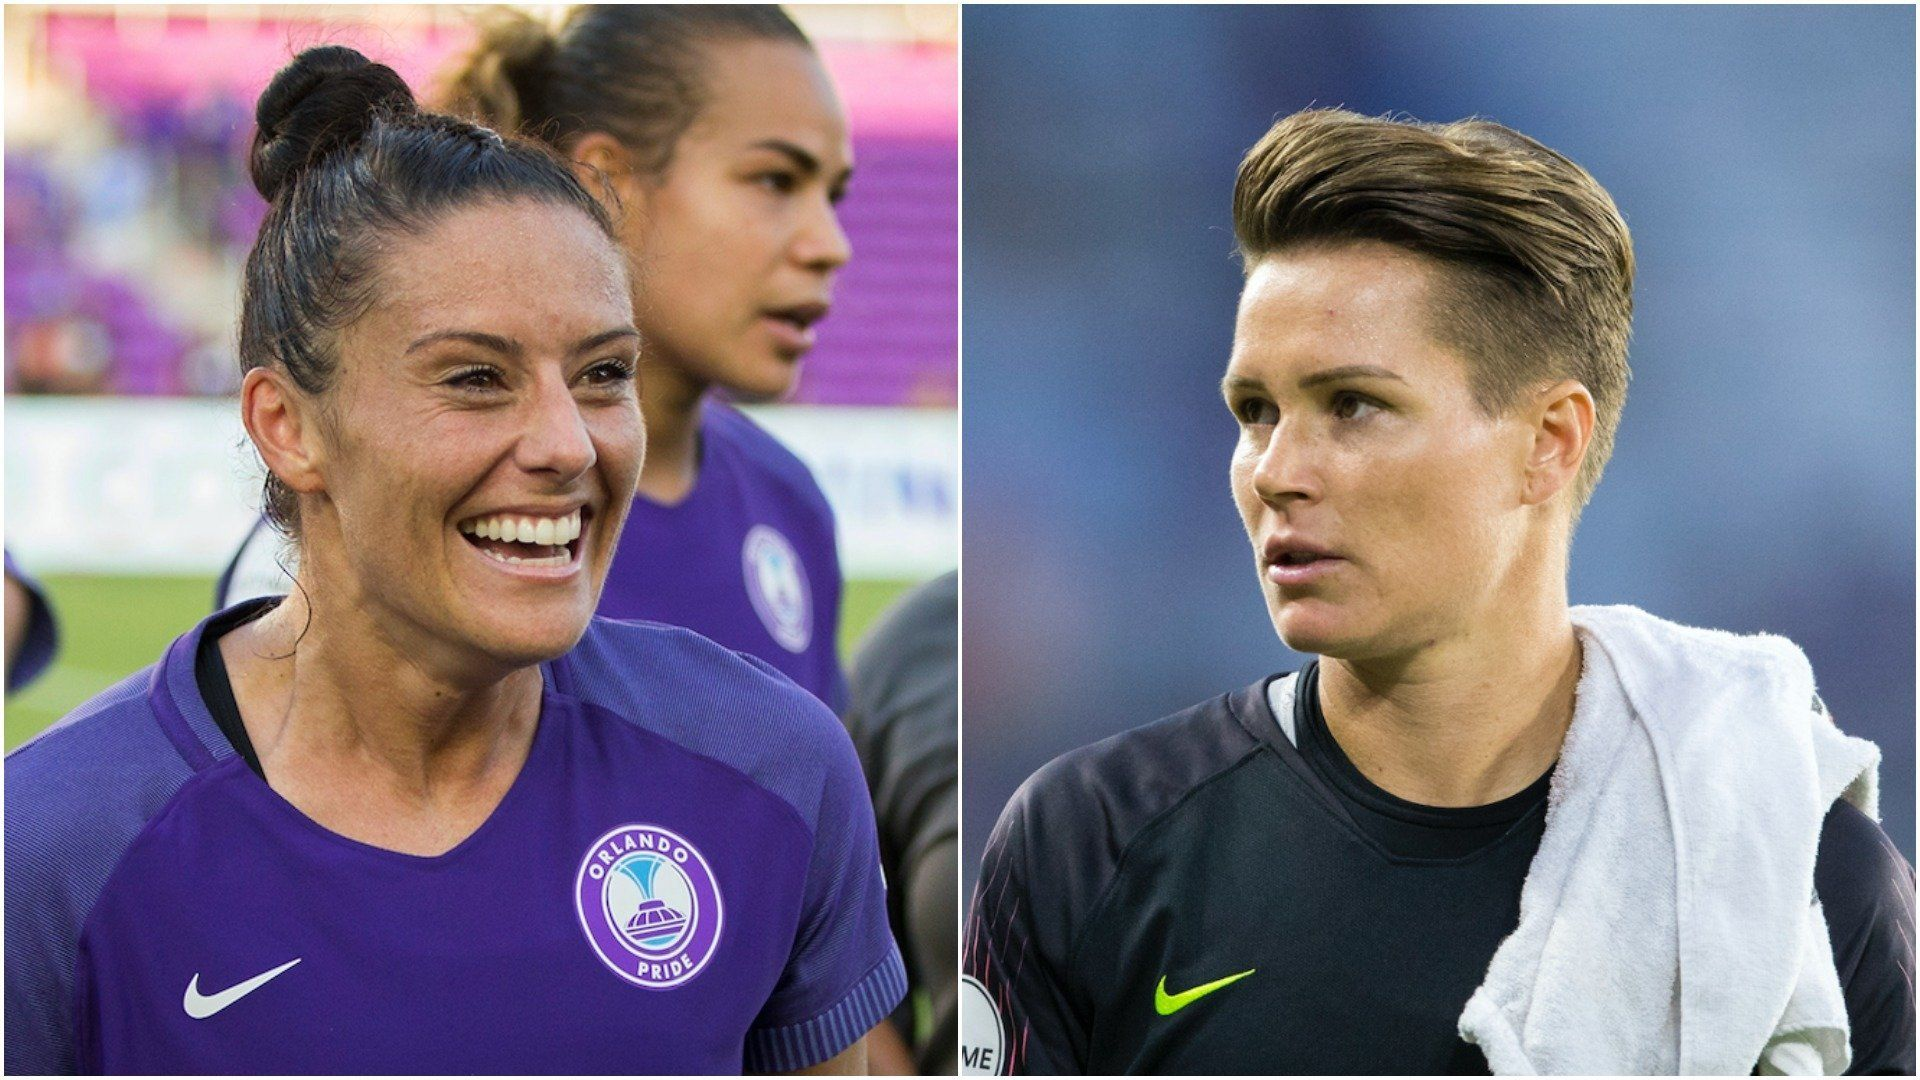 National Women's Soccer League stars Ali Krieger (left) and Ashlyn Harris announced their engagement this week.